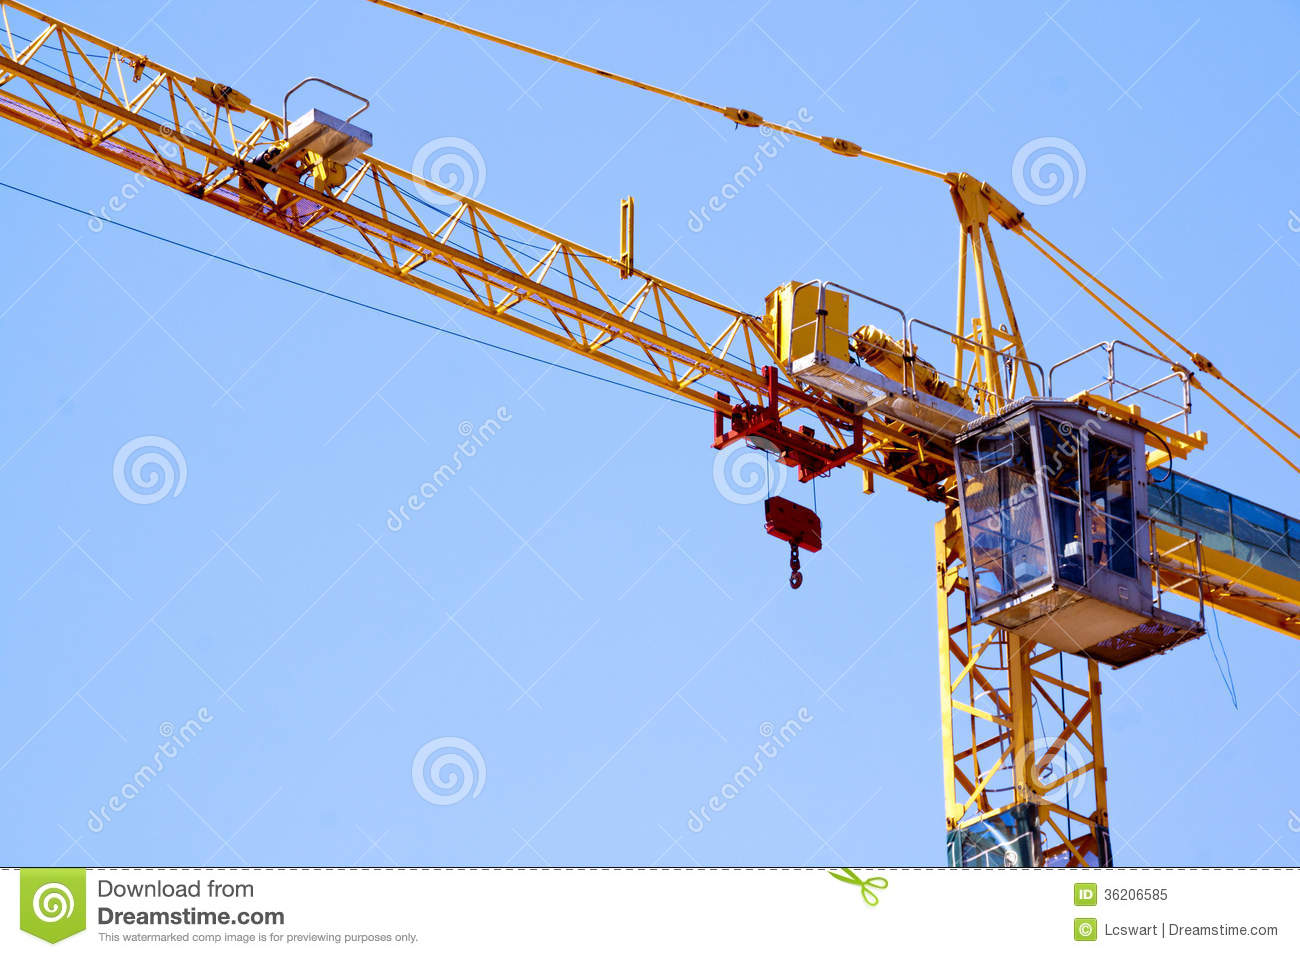 Pulleys In Cranes : Control cabin arm and pulleys on high lift crane royalty